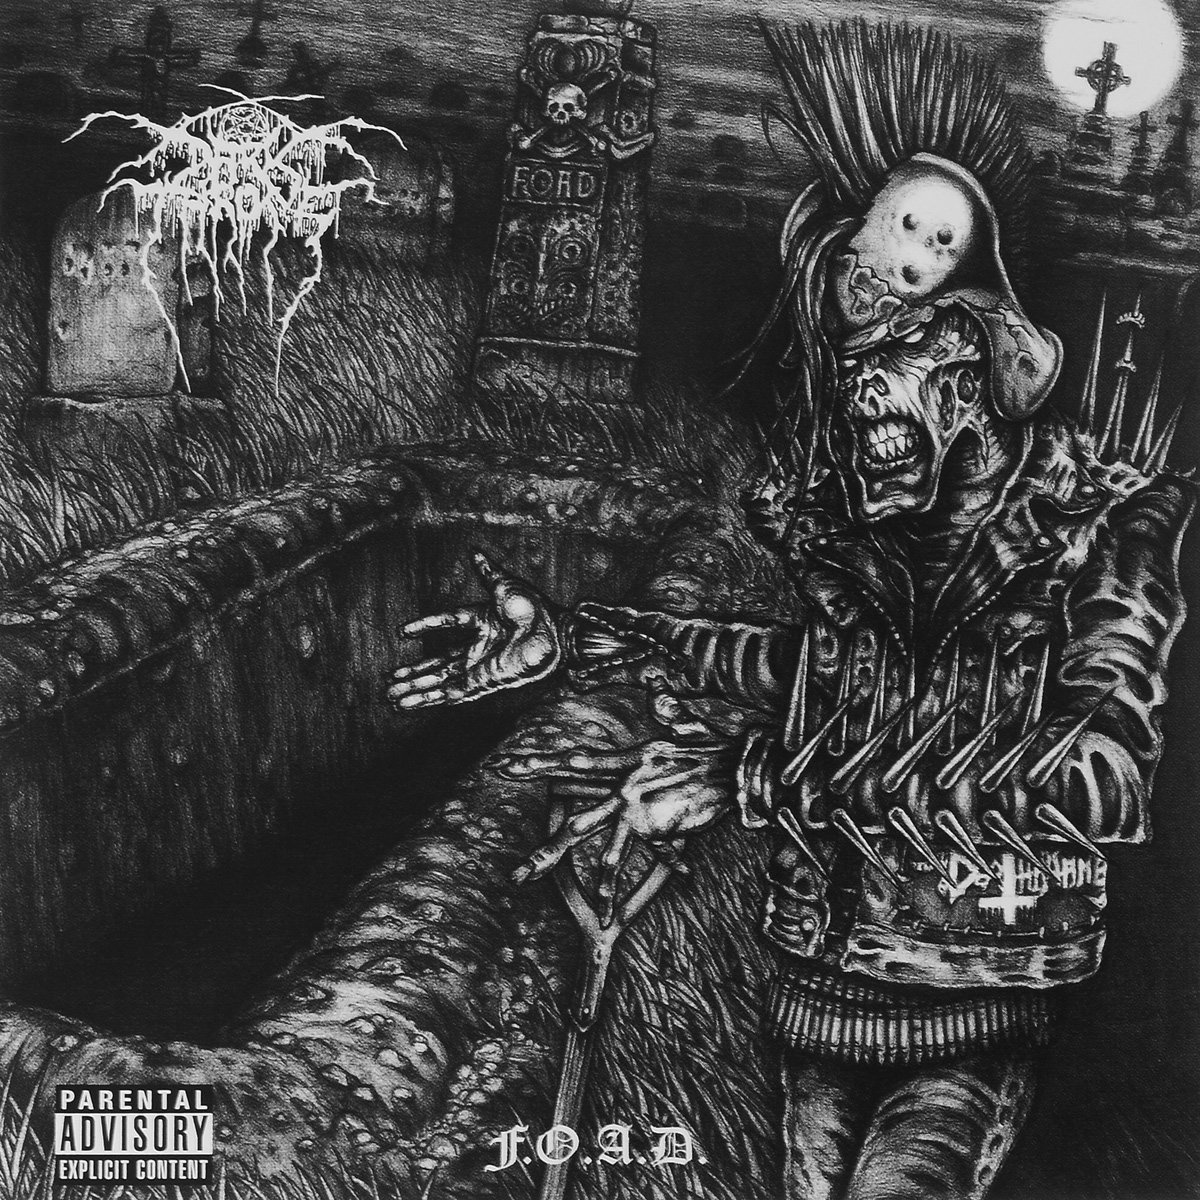 Darkthrone Darkthrone. F.O.A.D darkthrone darkthrone goatlord deluxe edition 2 cd